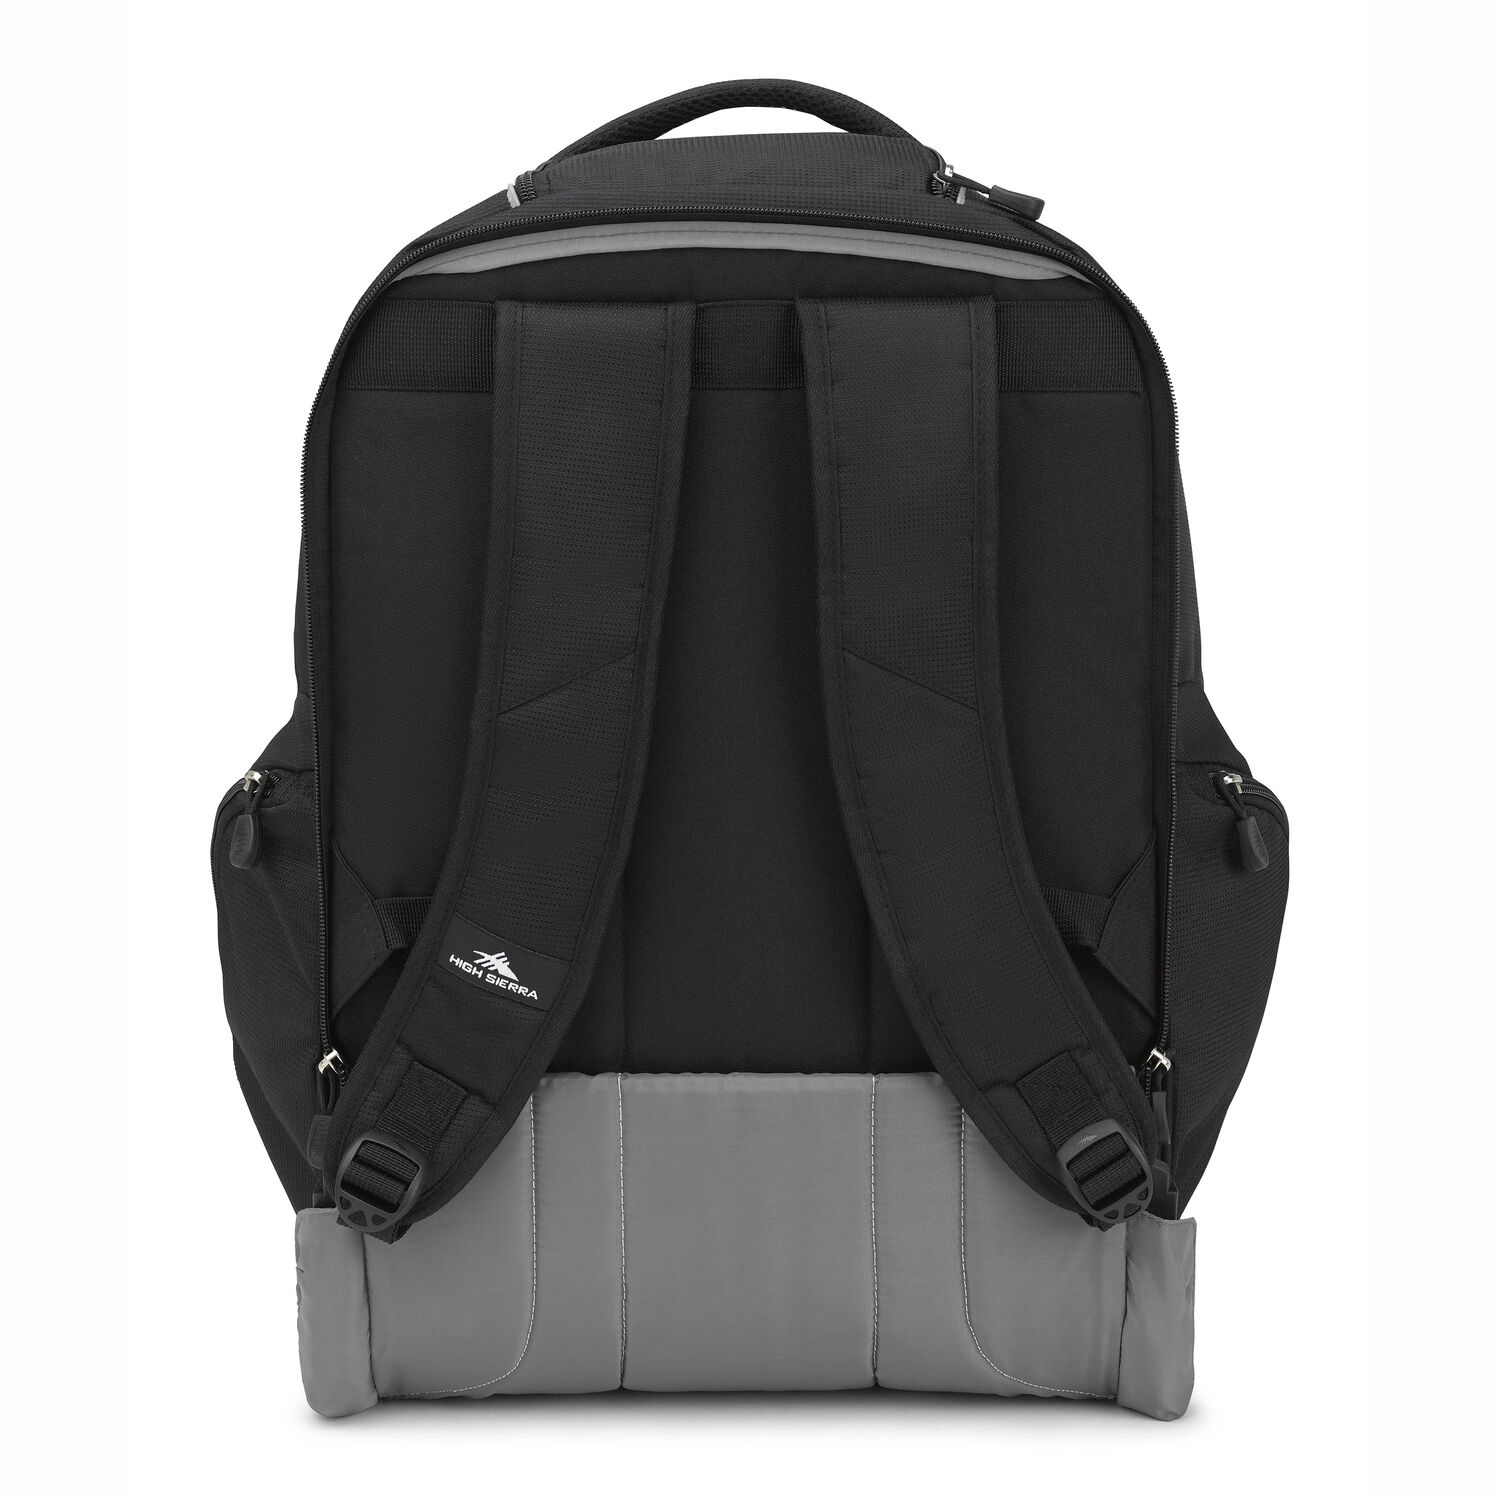 10691efcee7 High Sierra Powerglide Wheeled Backpack in the color Black.